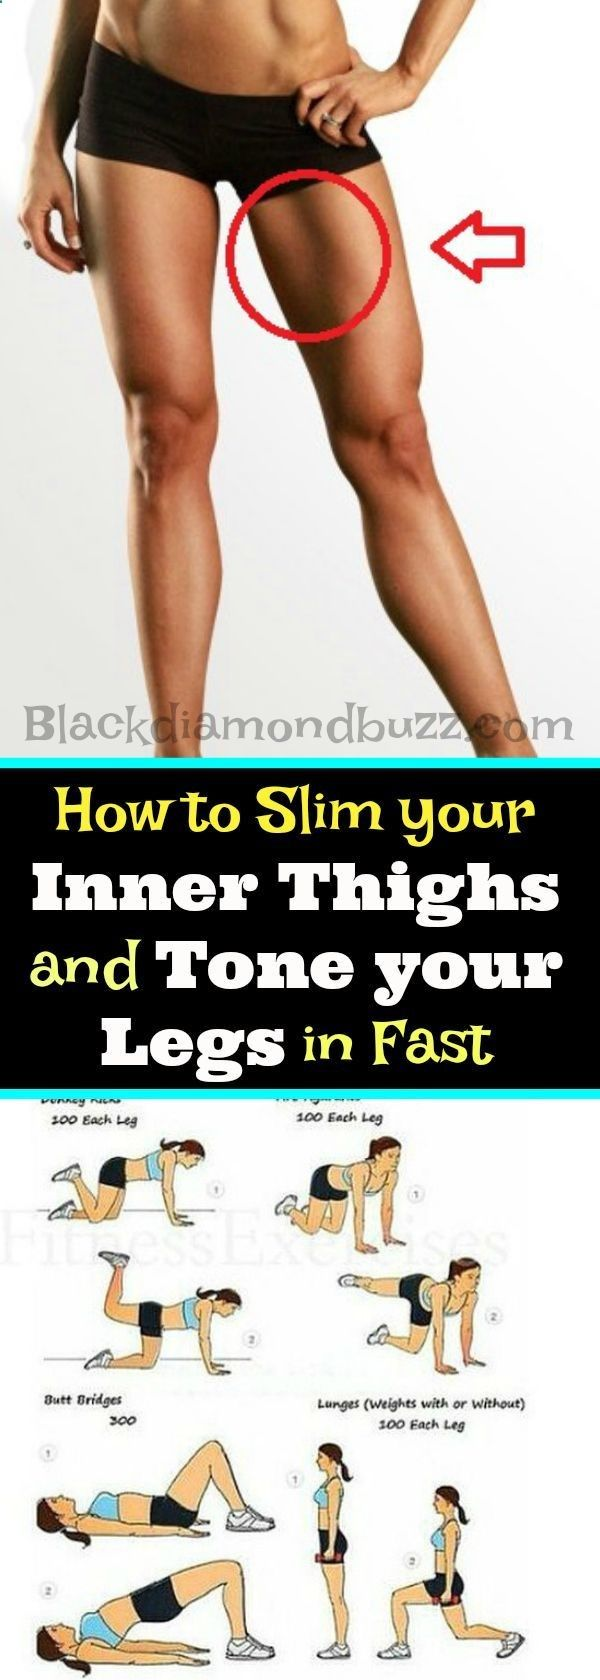 """Weight Loss E-Factor Diet - Gym  Entraînement : How to Slim your Inner Thighs and Tone your Legs in Fast in 30 days. These exerc... For starters, the E Factor Diet is an online weight-loss program. The ingredients include """"simple real foods"""" found at local grocery stores."""